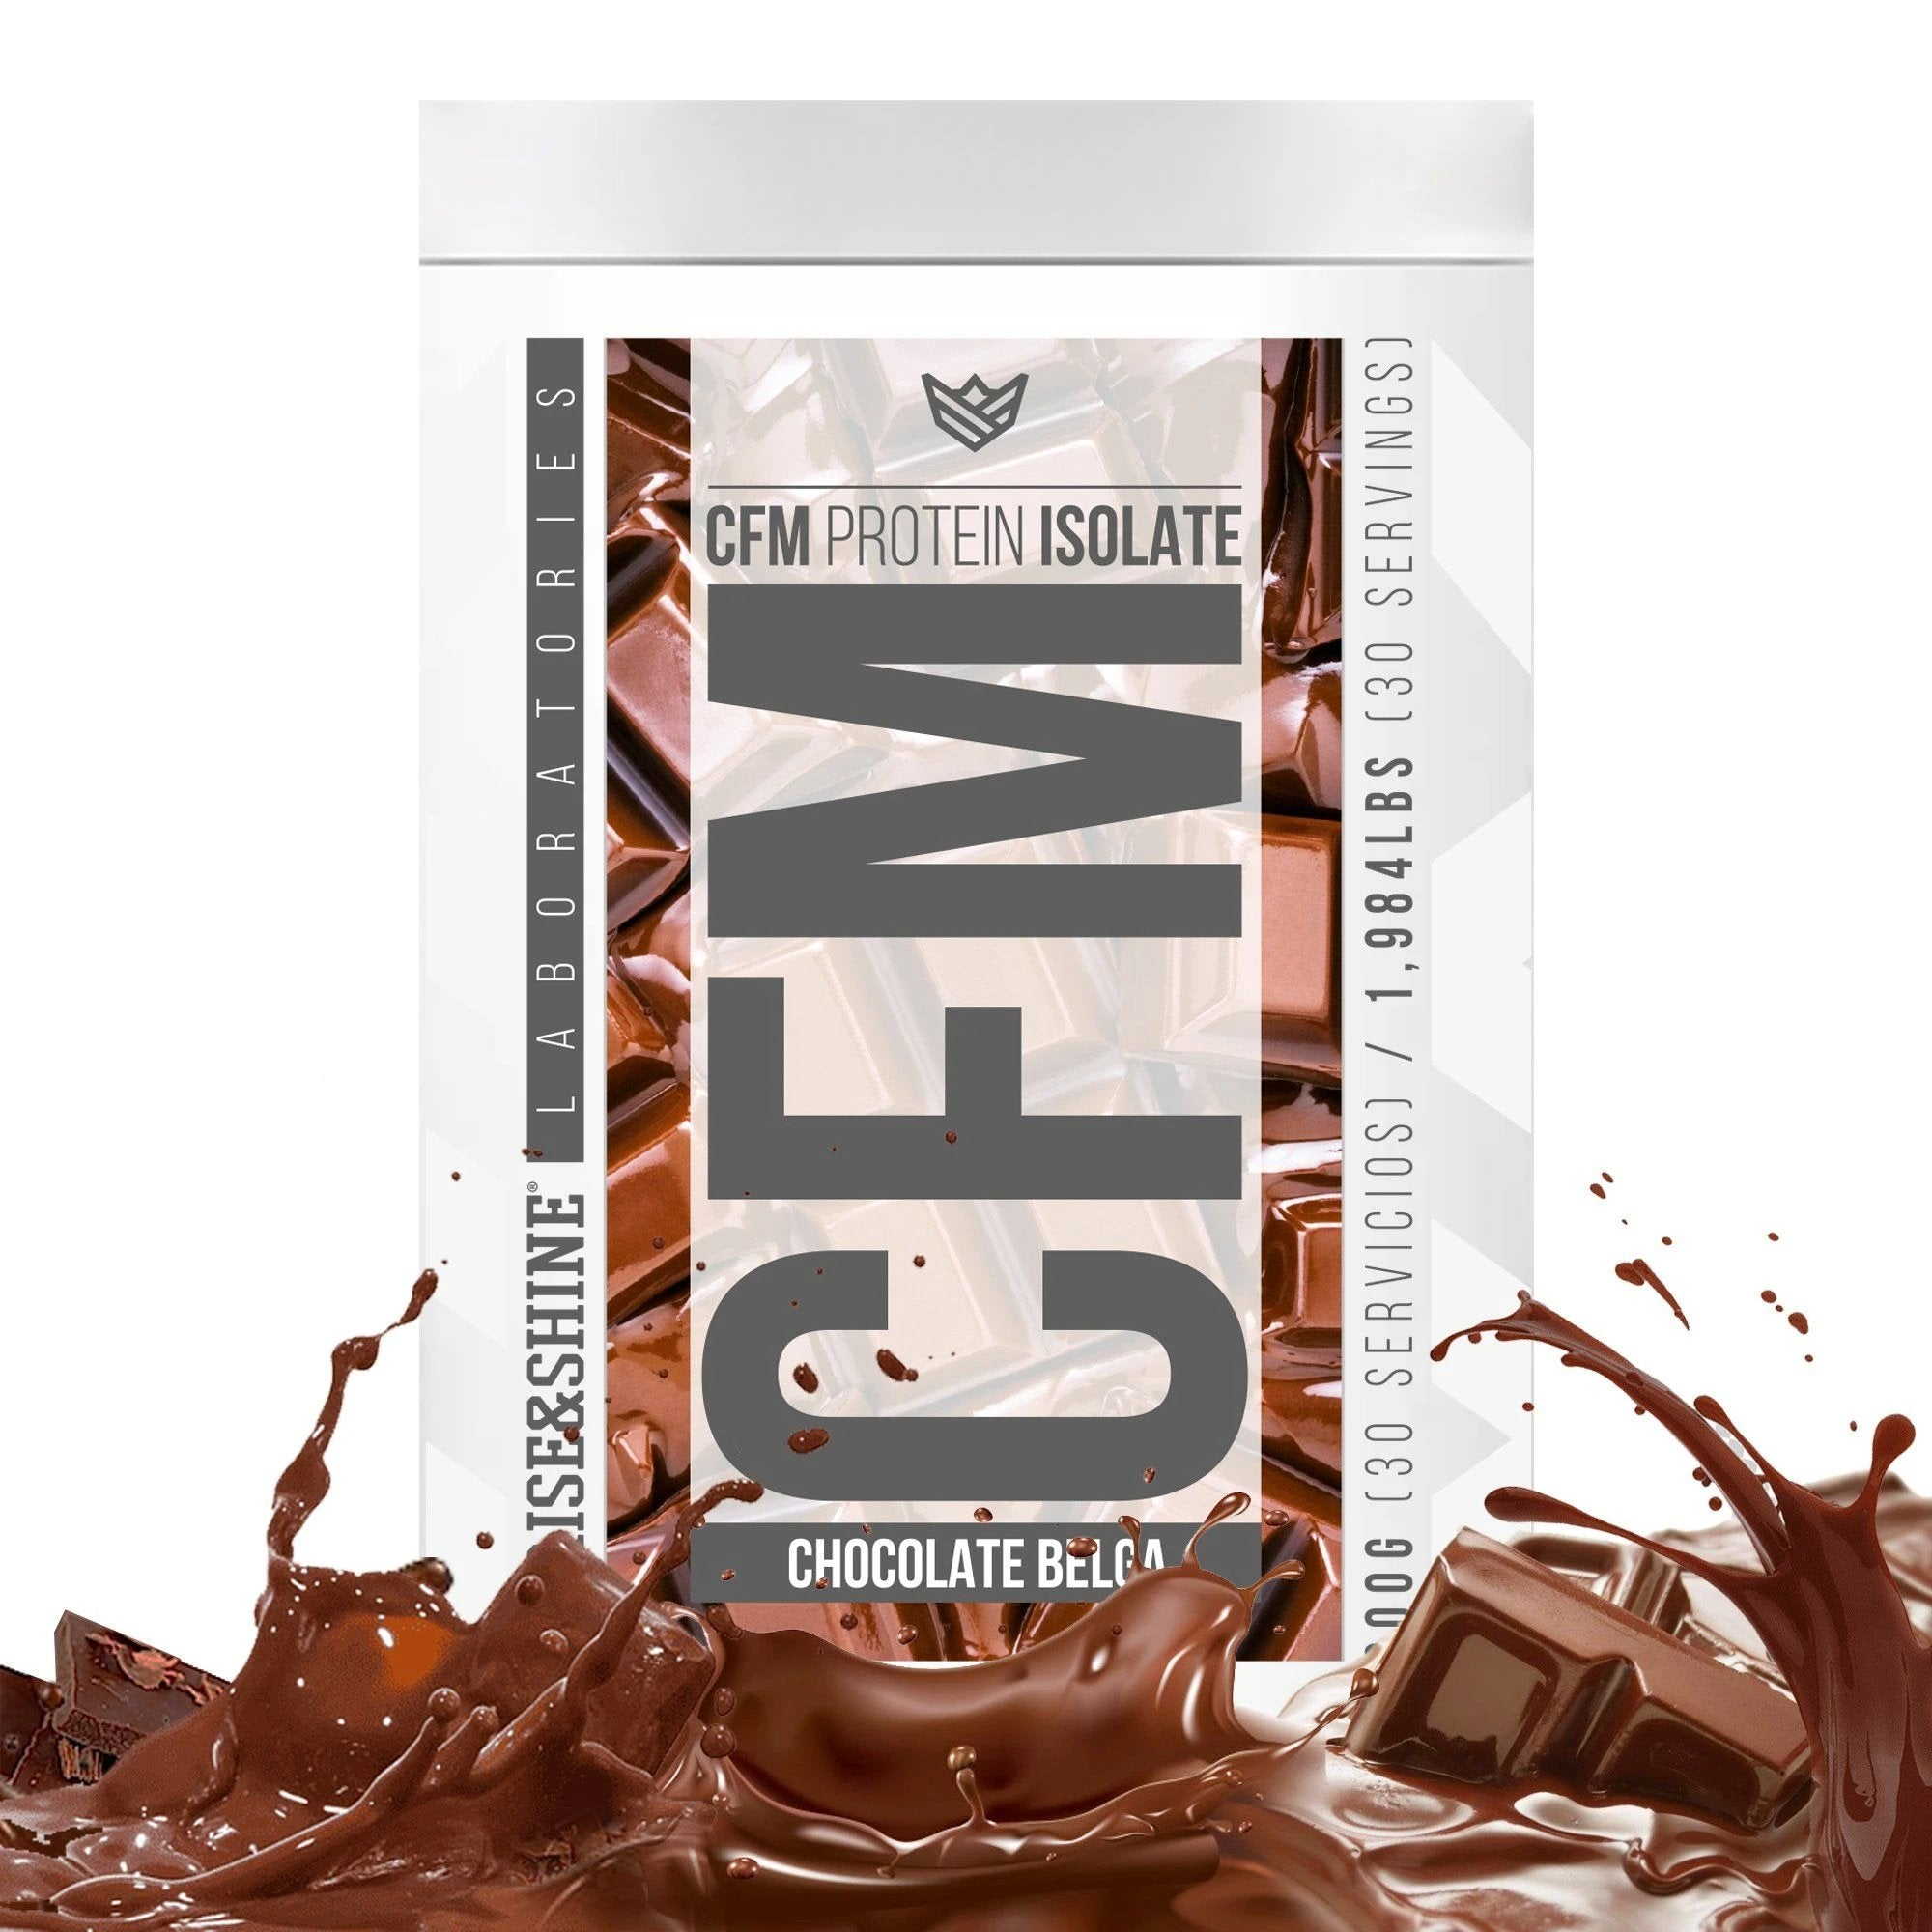 [PRE COMPRA] 900g CFM Whey Protein Isolate (Chocolate Belga) Rise&Shine Mindbody Industries 900G Choco Avellana